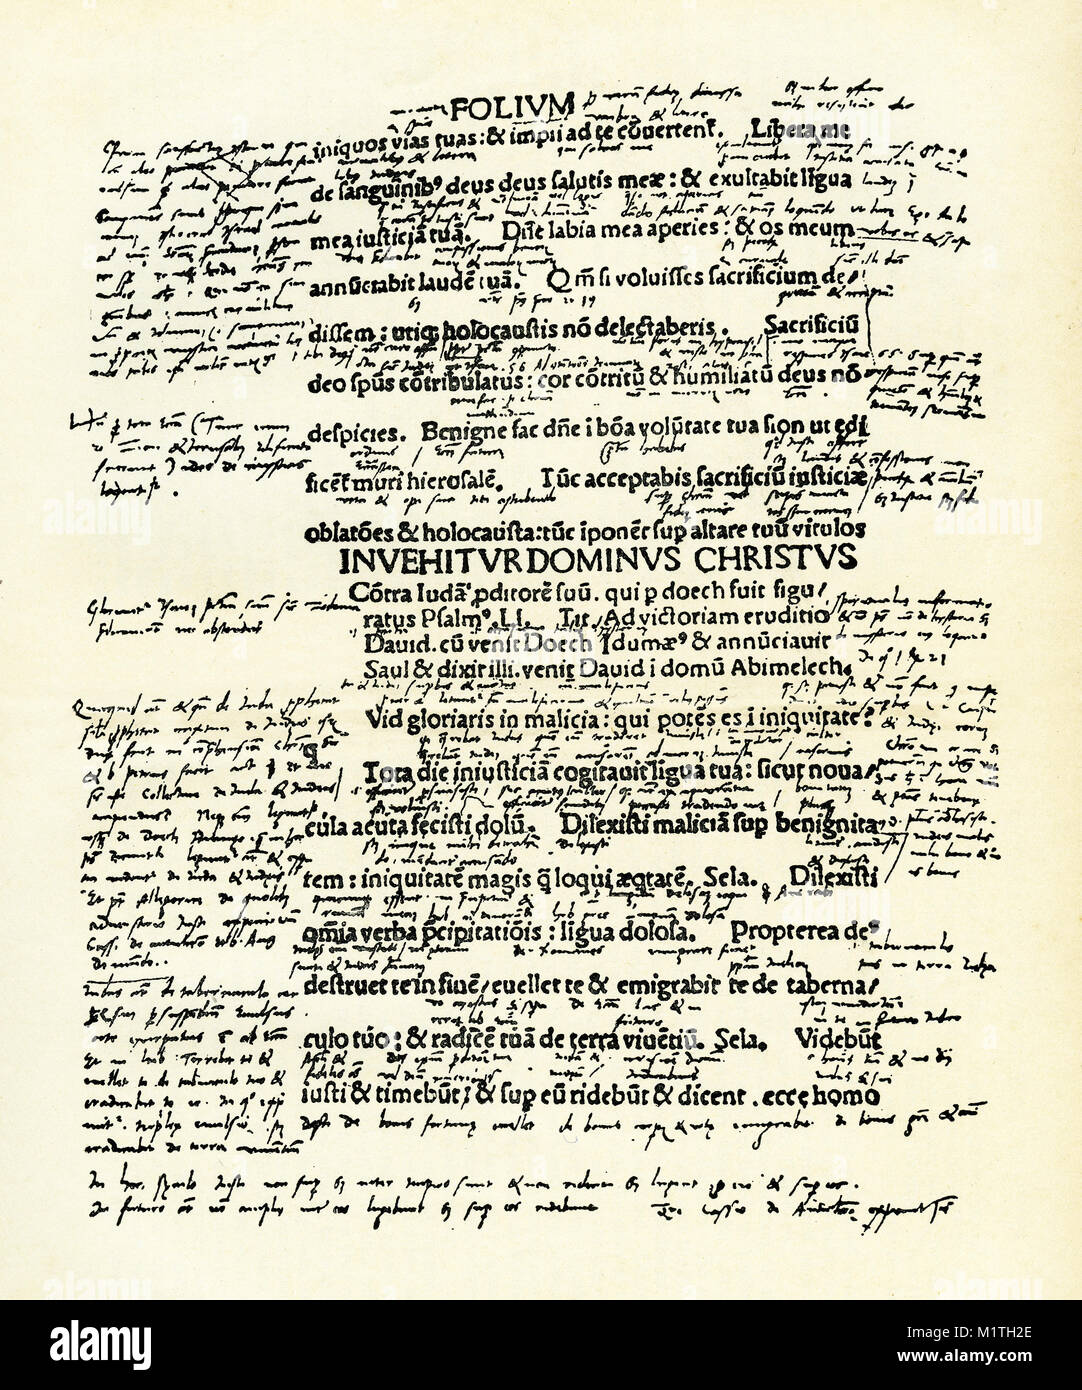 Facsmilie of a page from Martin Luther's psalter, showing his doctrinal thoughts. From the Life of Luther by - Stock Image